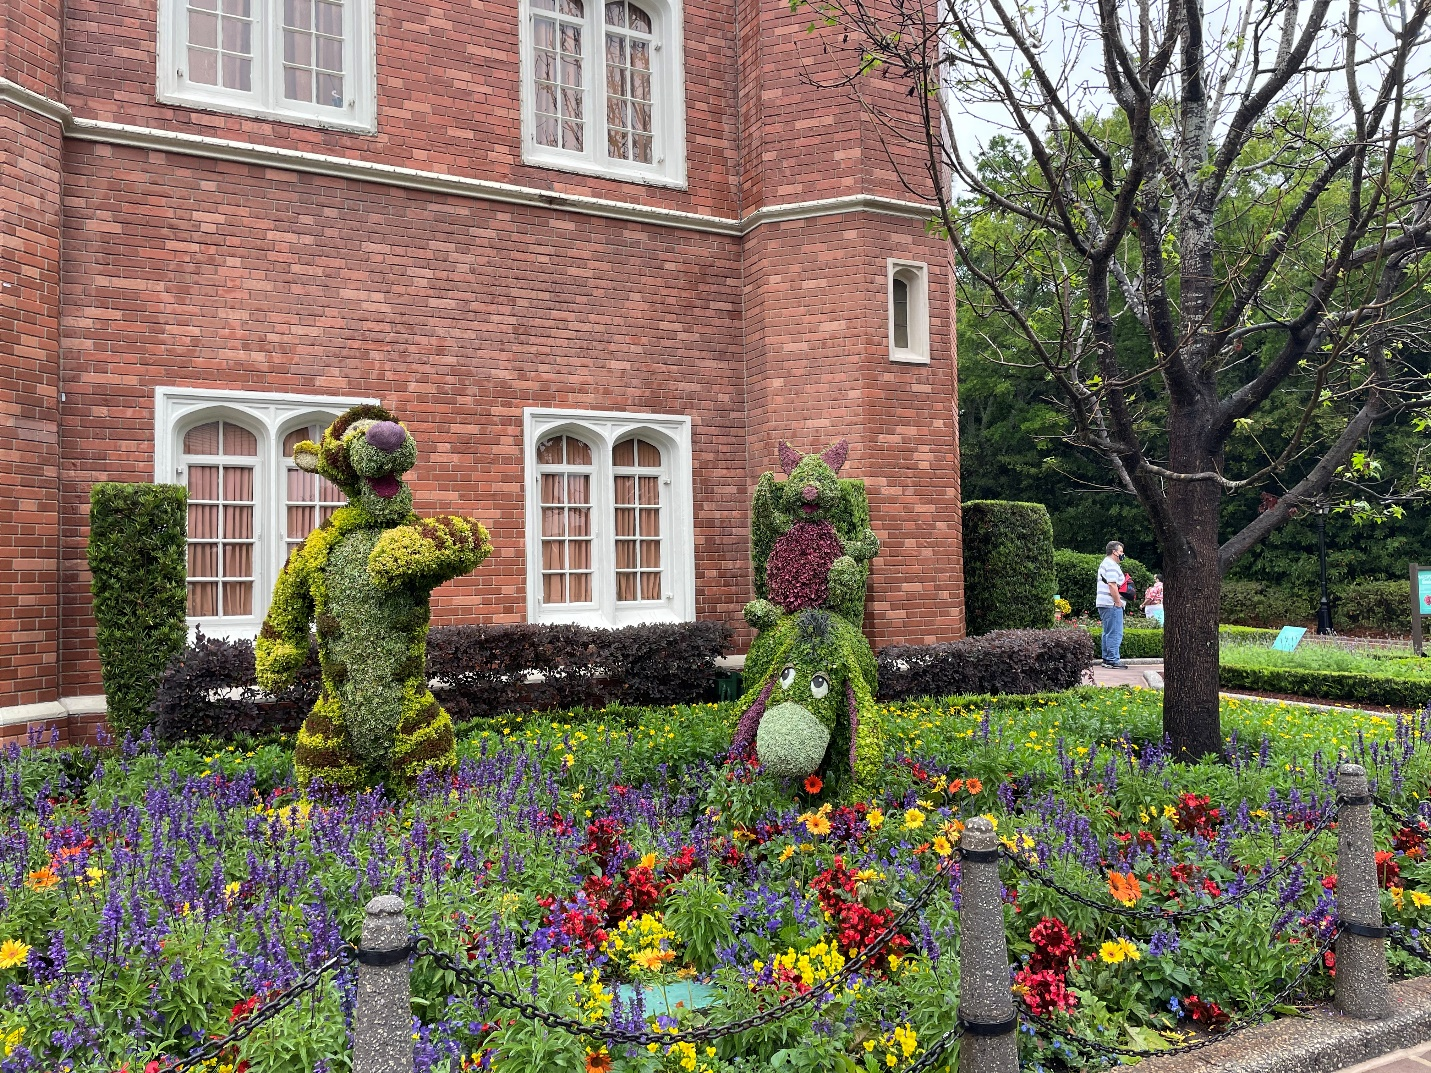 A statue in a garden Description automatically generated with medium confidence